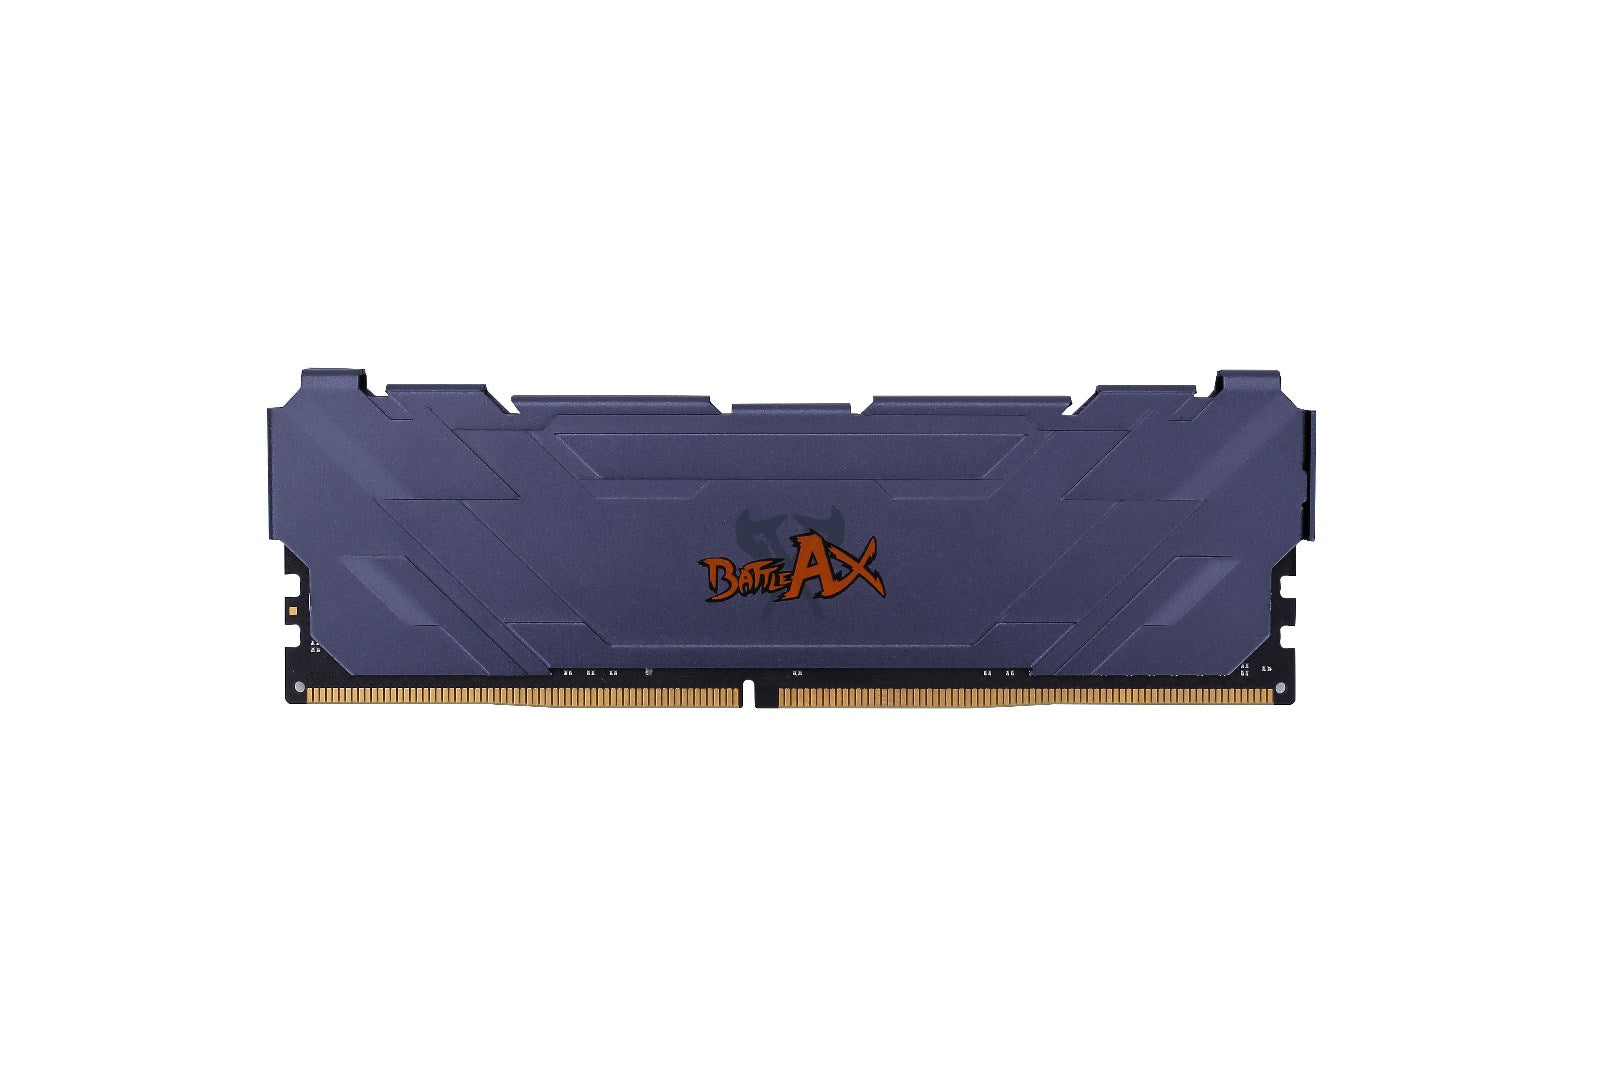 Colorful Battle AX 8GB DDR4 3000